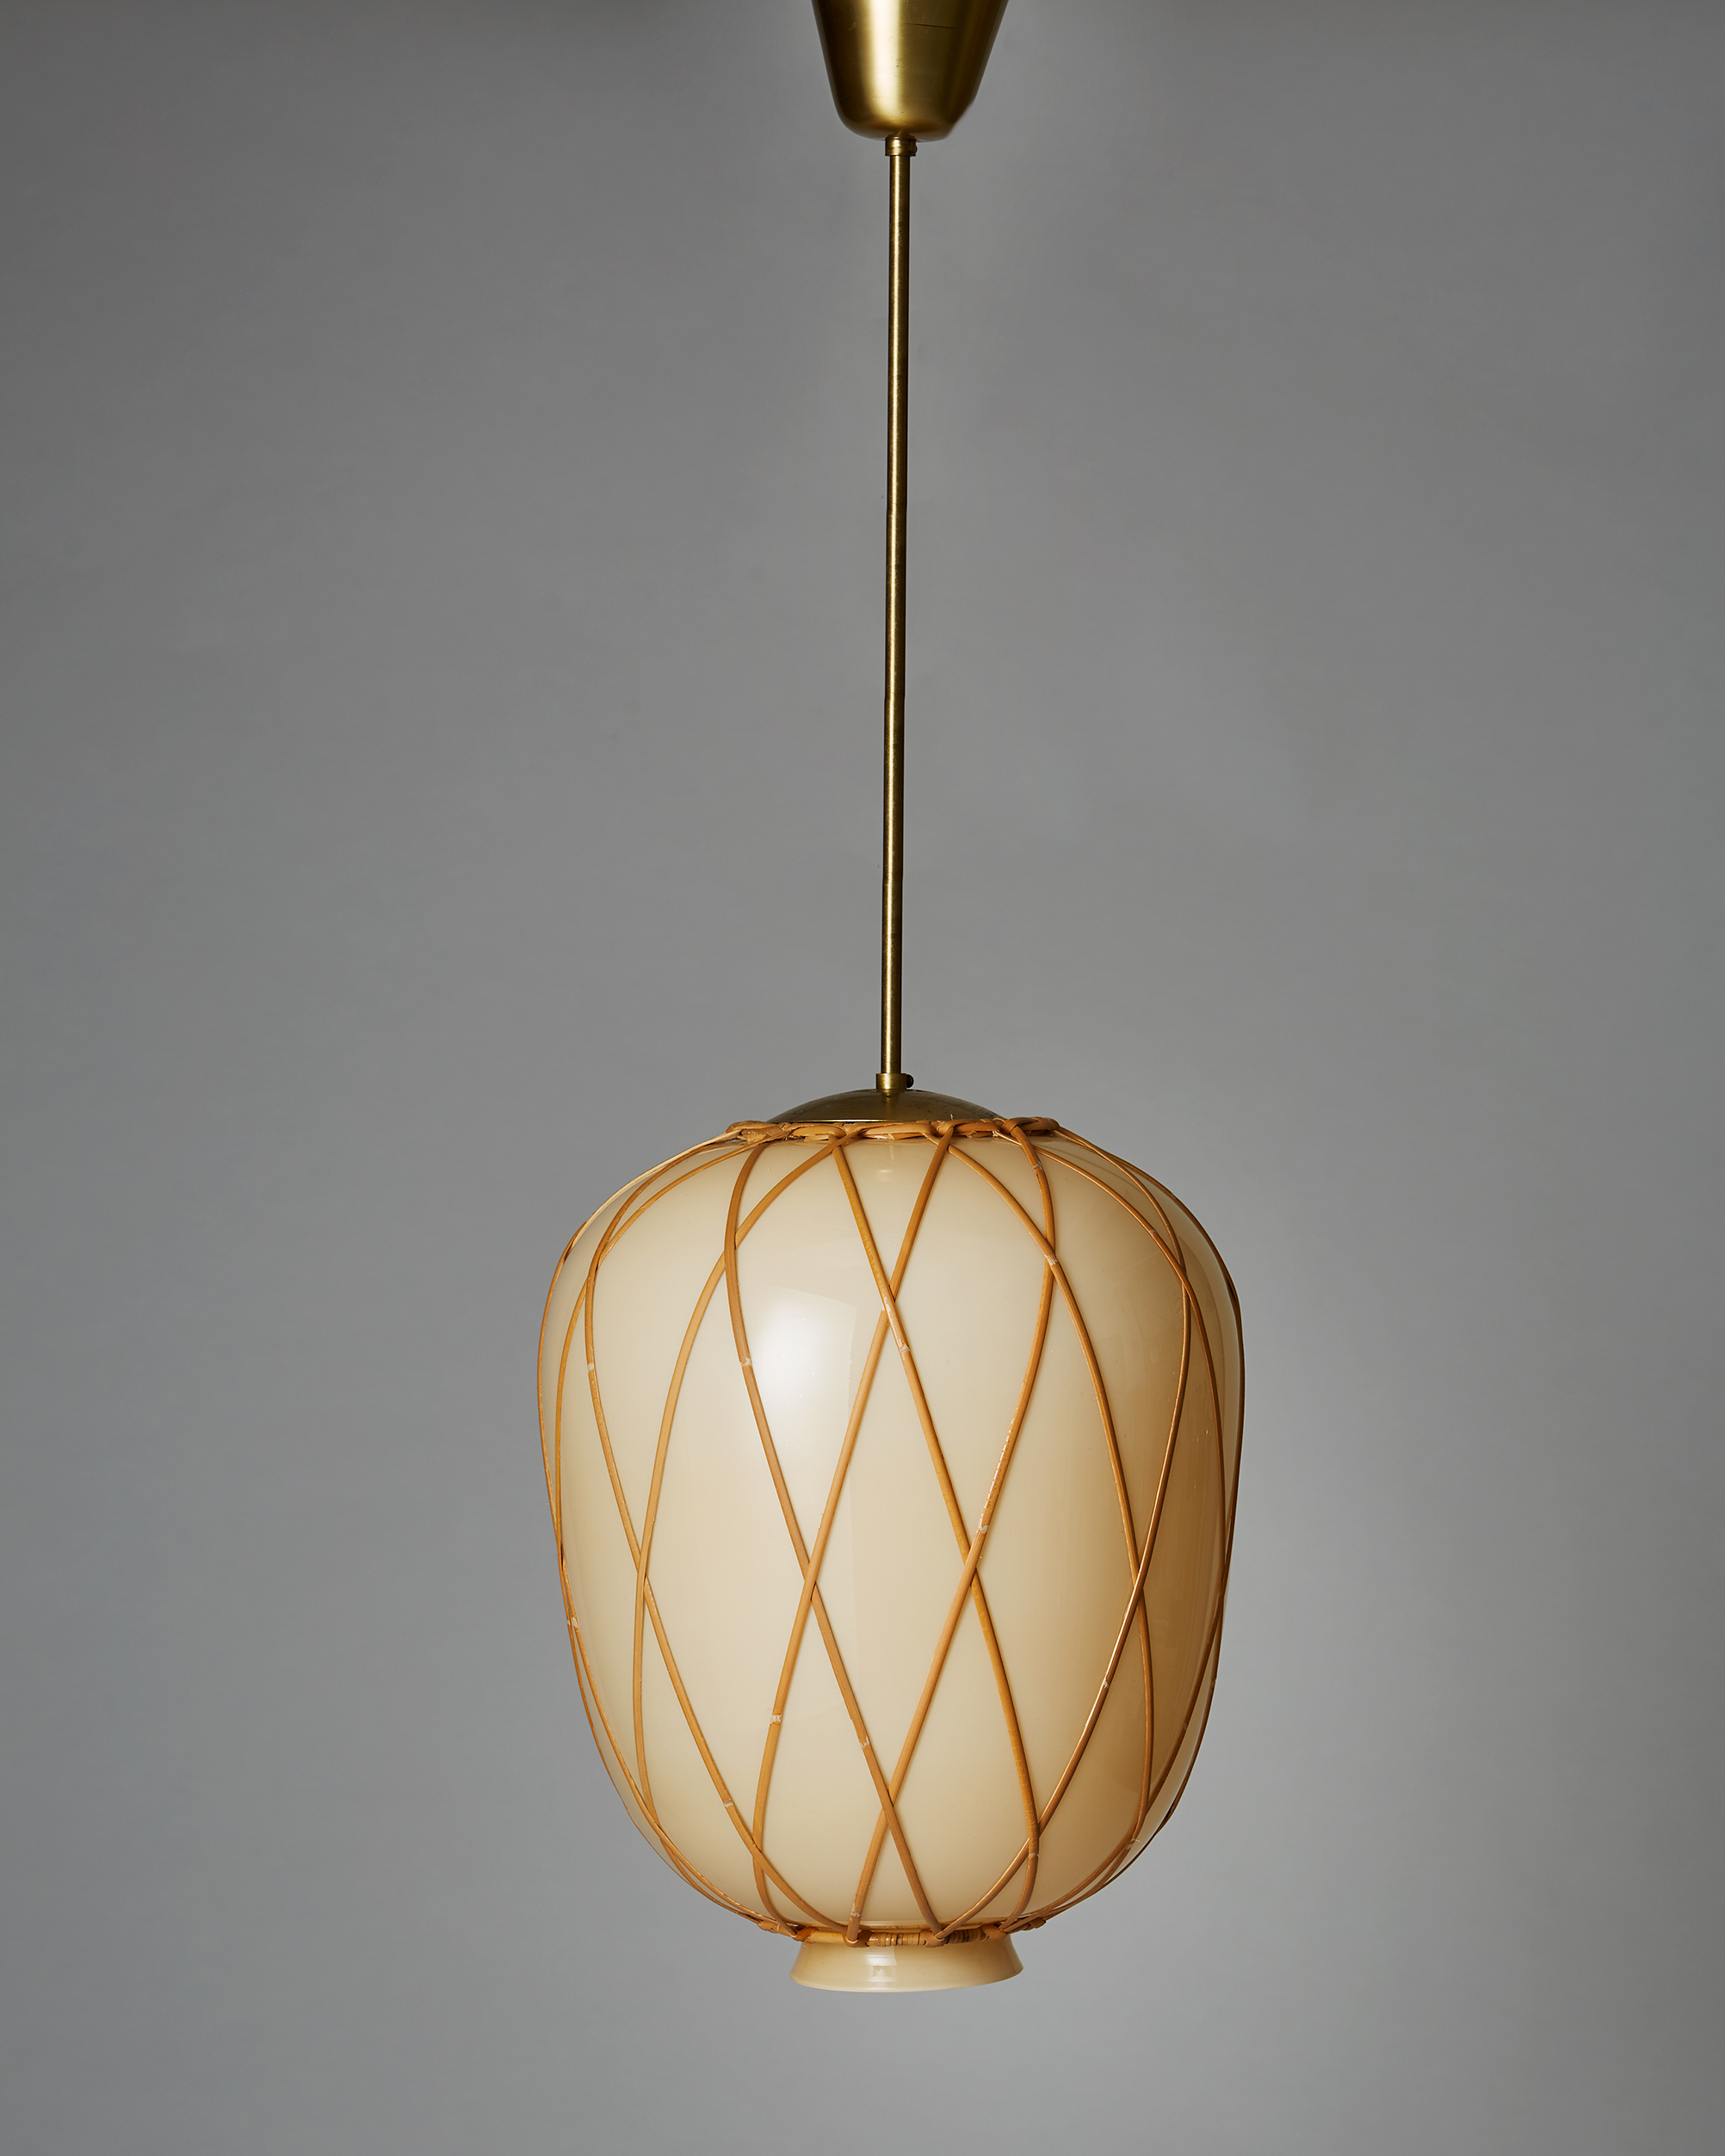 Carl Westman  Ceiling lamp Sweden, 1920's Mouth-blown glass, cane and brass.